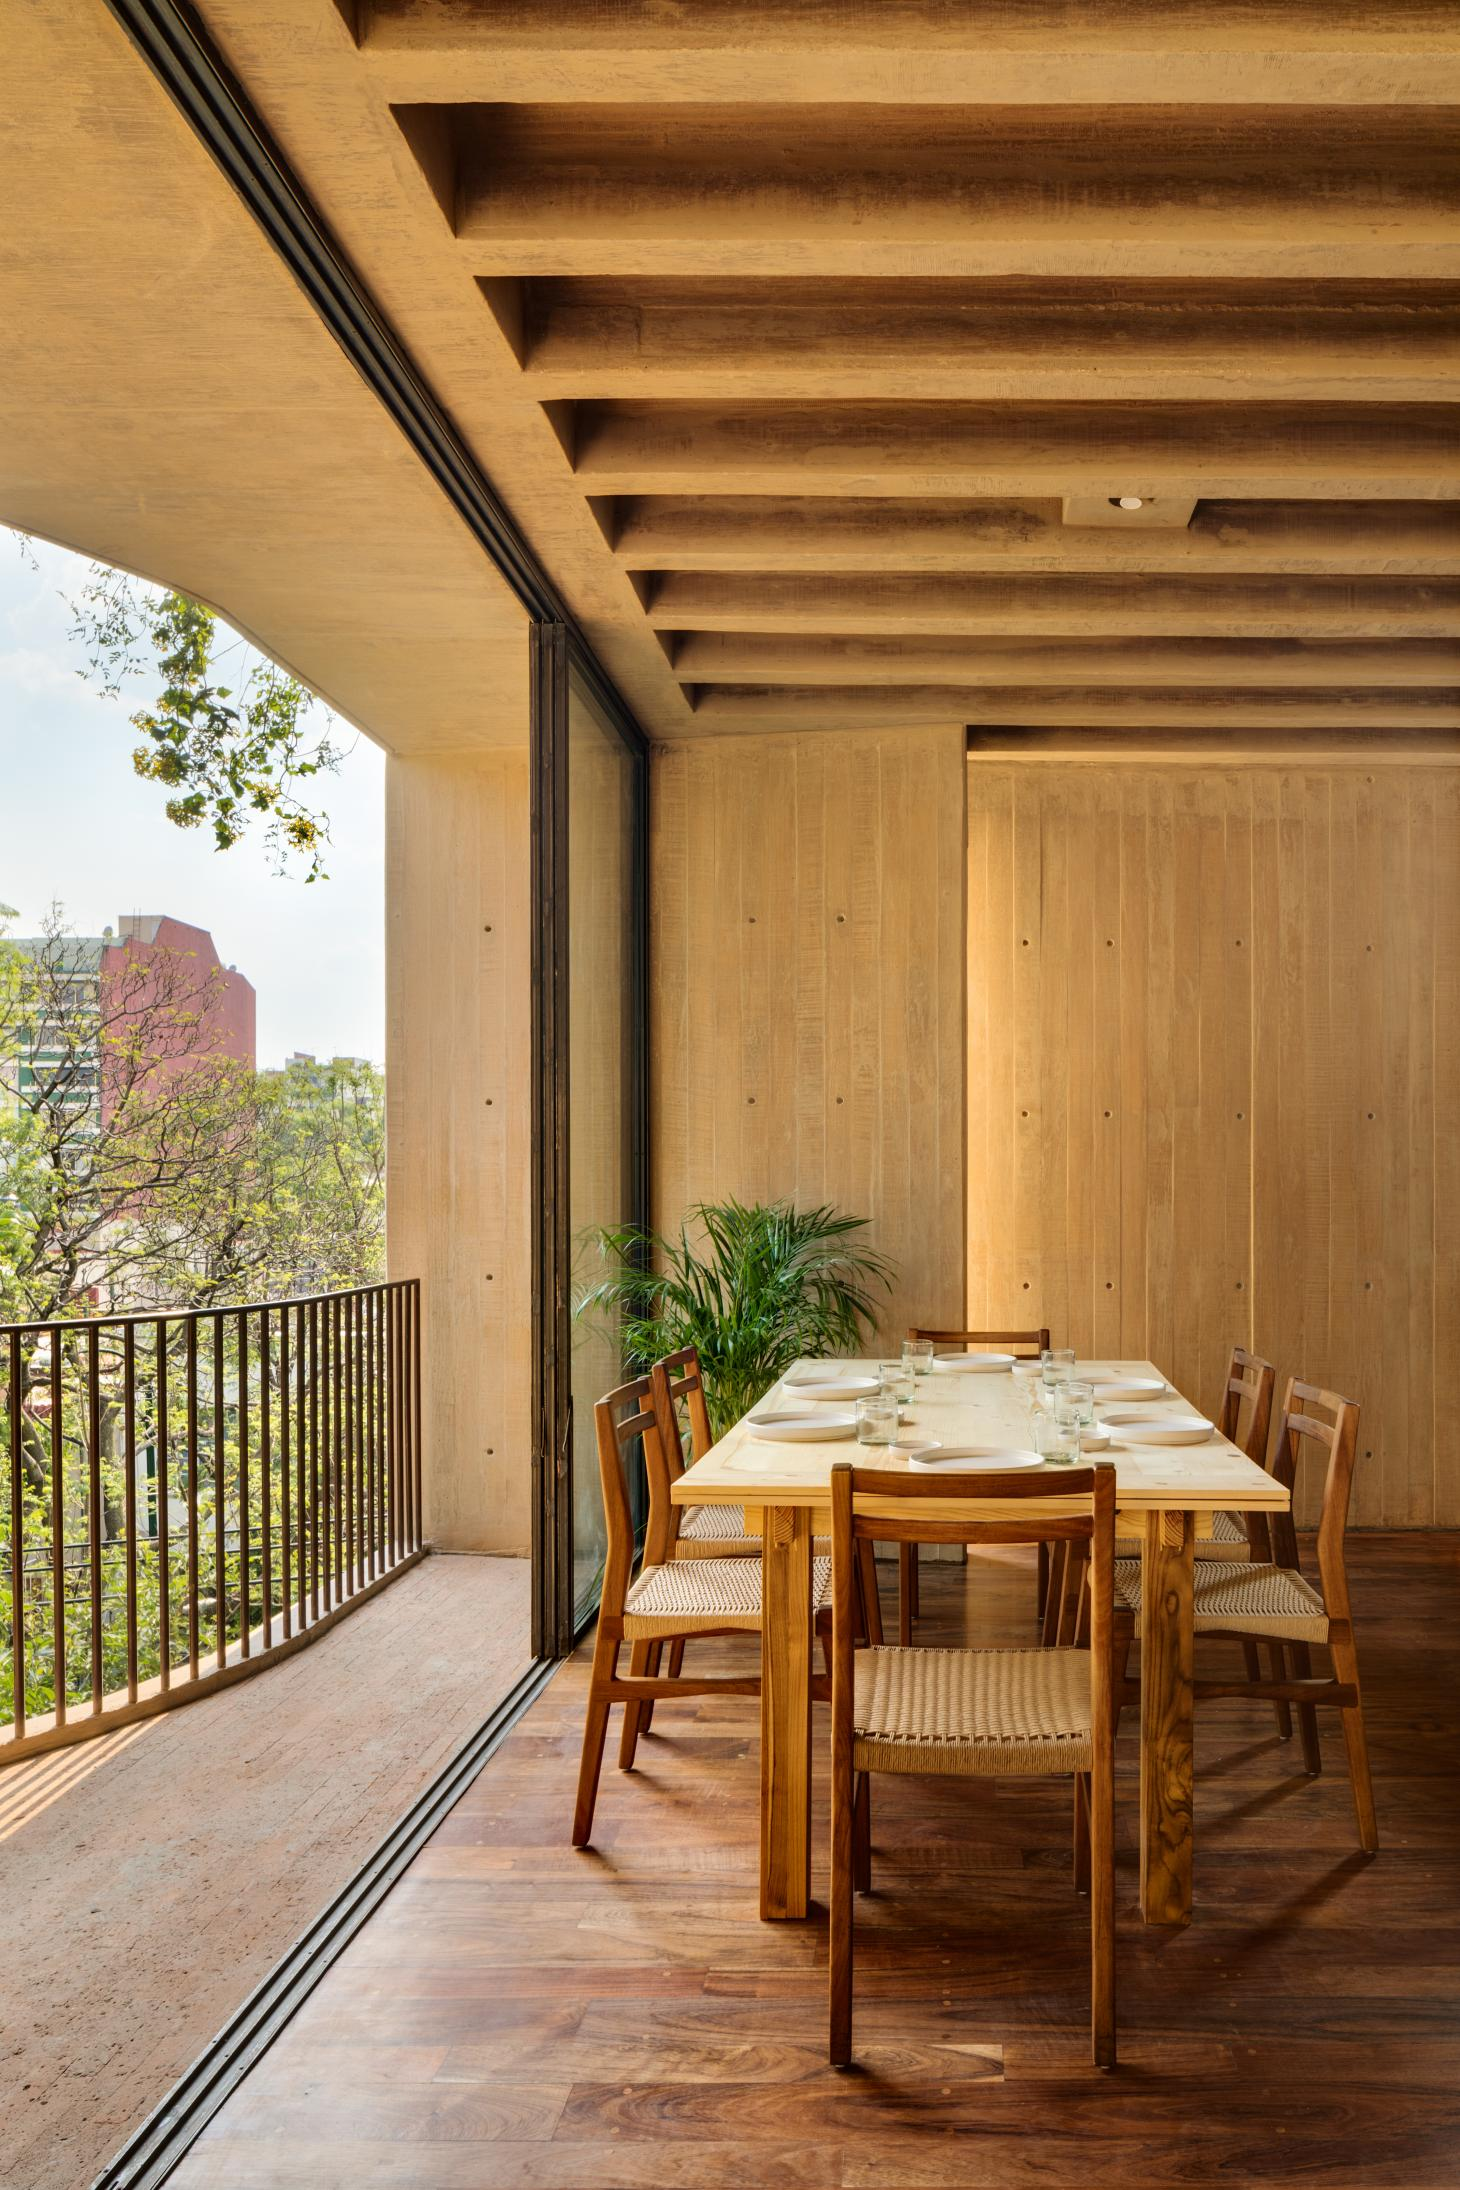 IGNANT-Architecture-Taller-Hector-Barroso-LC710-4